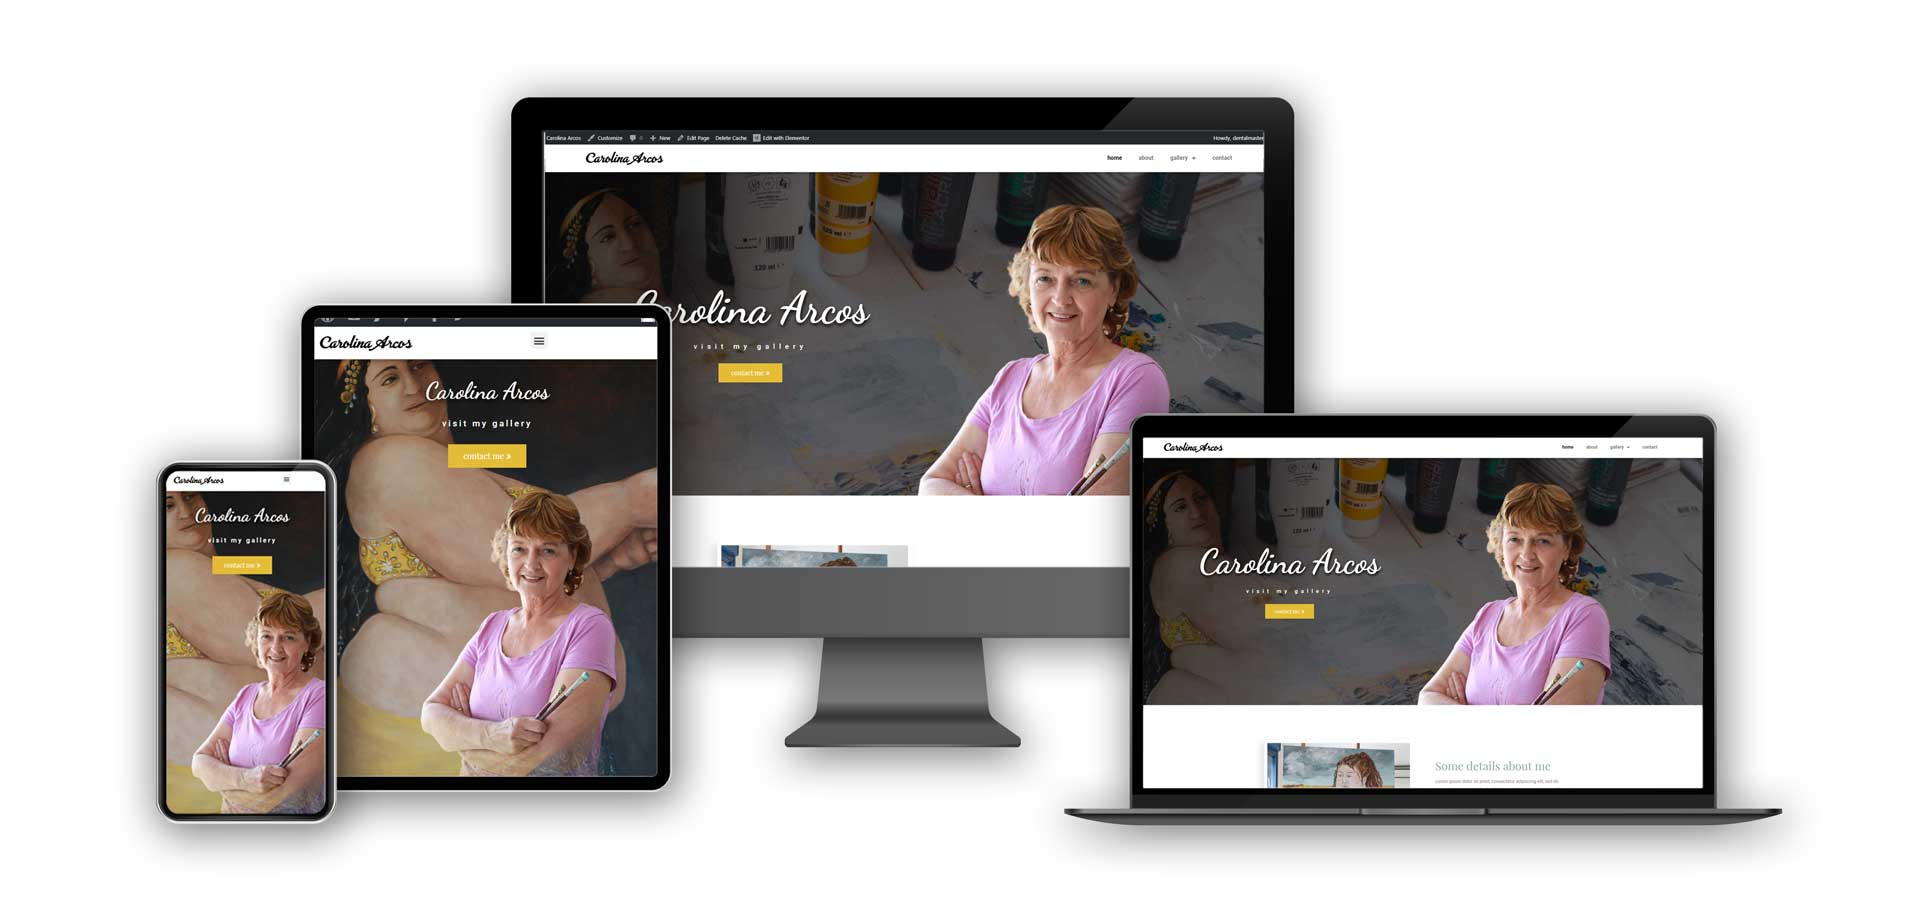 Carolina Arcos website on different screens